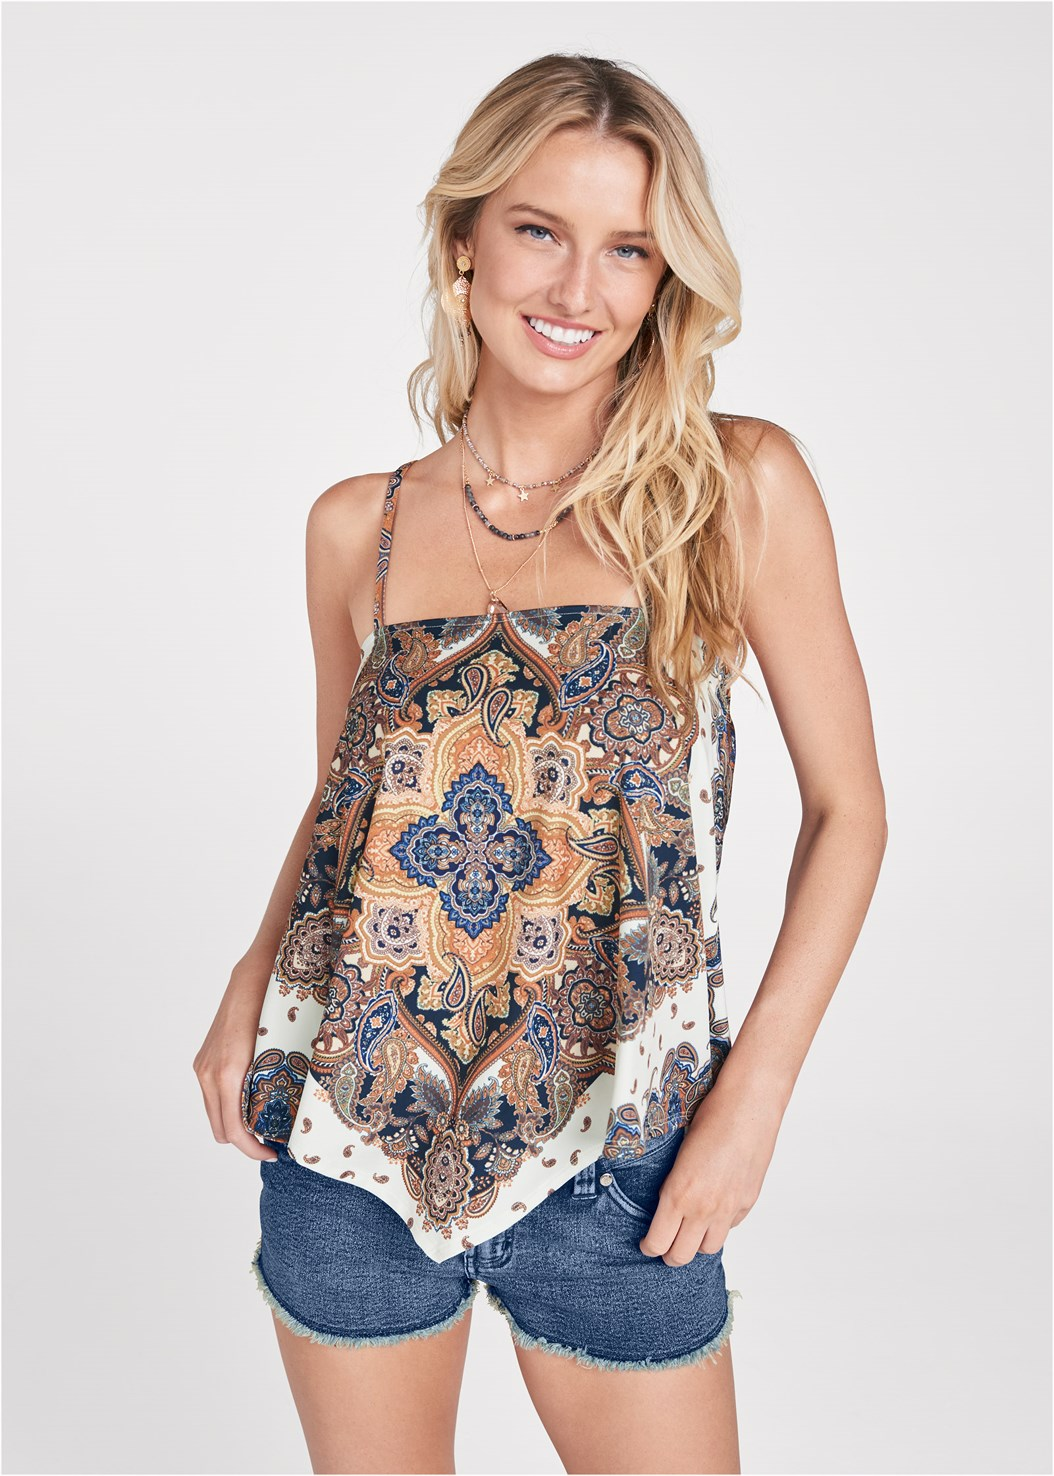 Bandana Print Top,Frayed Cut Off Jean Shorts,Essential Espadrille Wedges,Stars Stones Layered Necklace